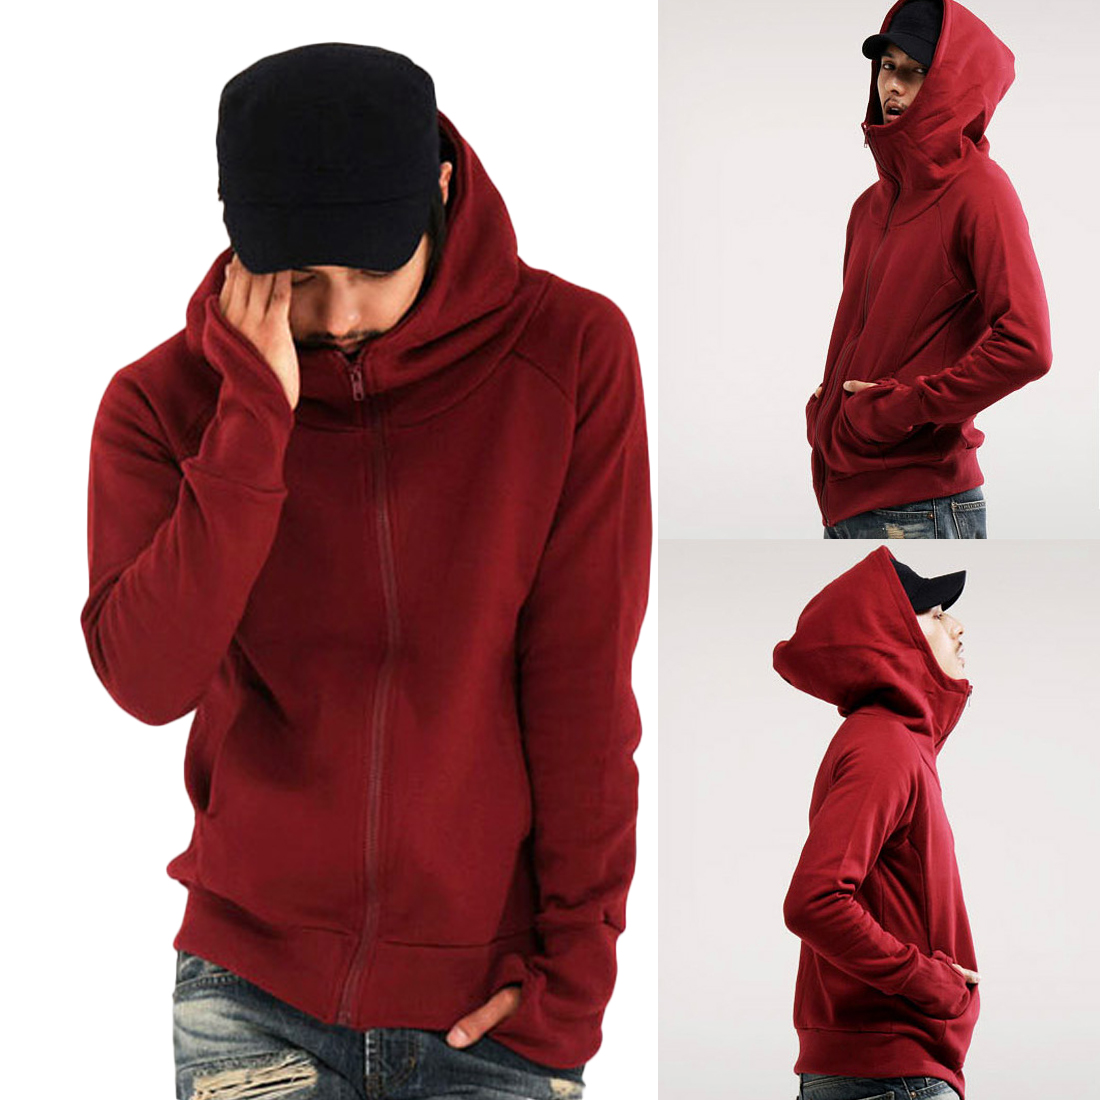 YJSFG HOUSE Mens Hoodies Fashion Slim Fit Hooded Gloves Pullover Long Sleeve Jackets Sweatshirts Casual Zipper Coats